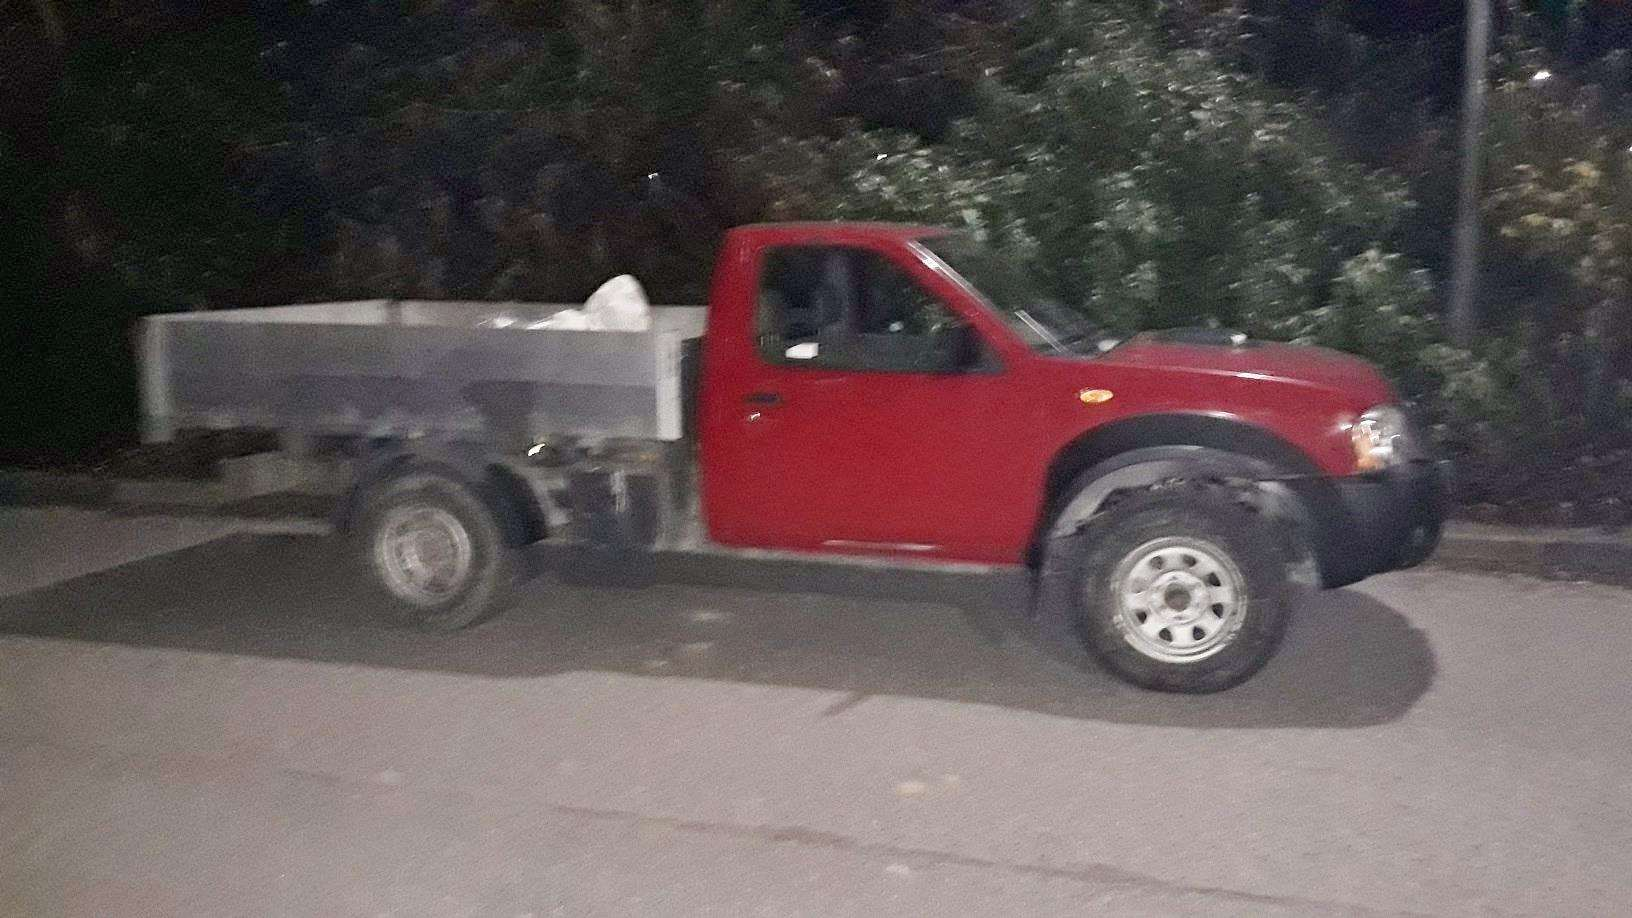 One of the vehicles seized by police. (6422798)